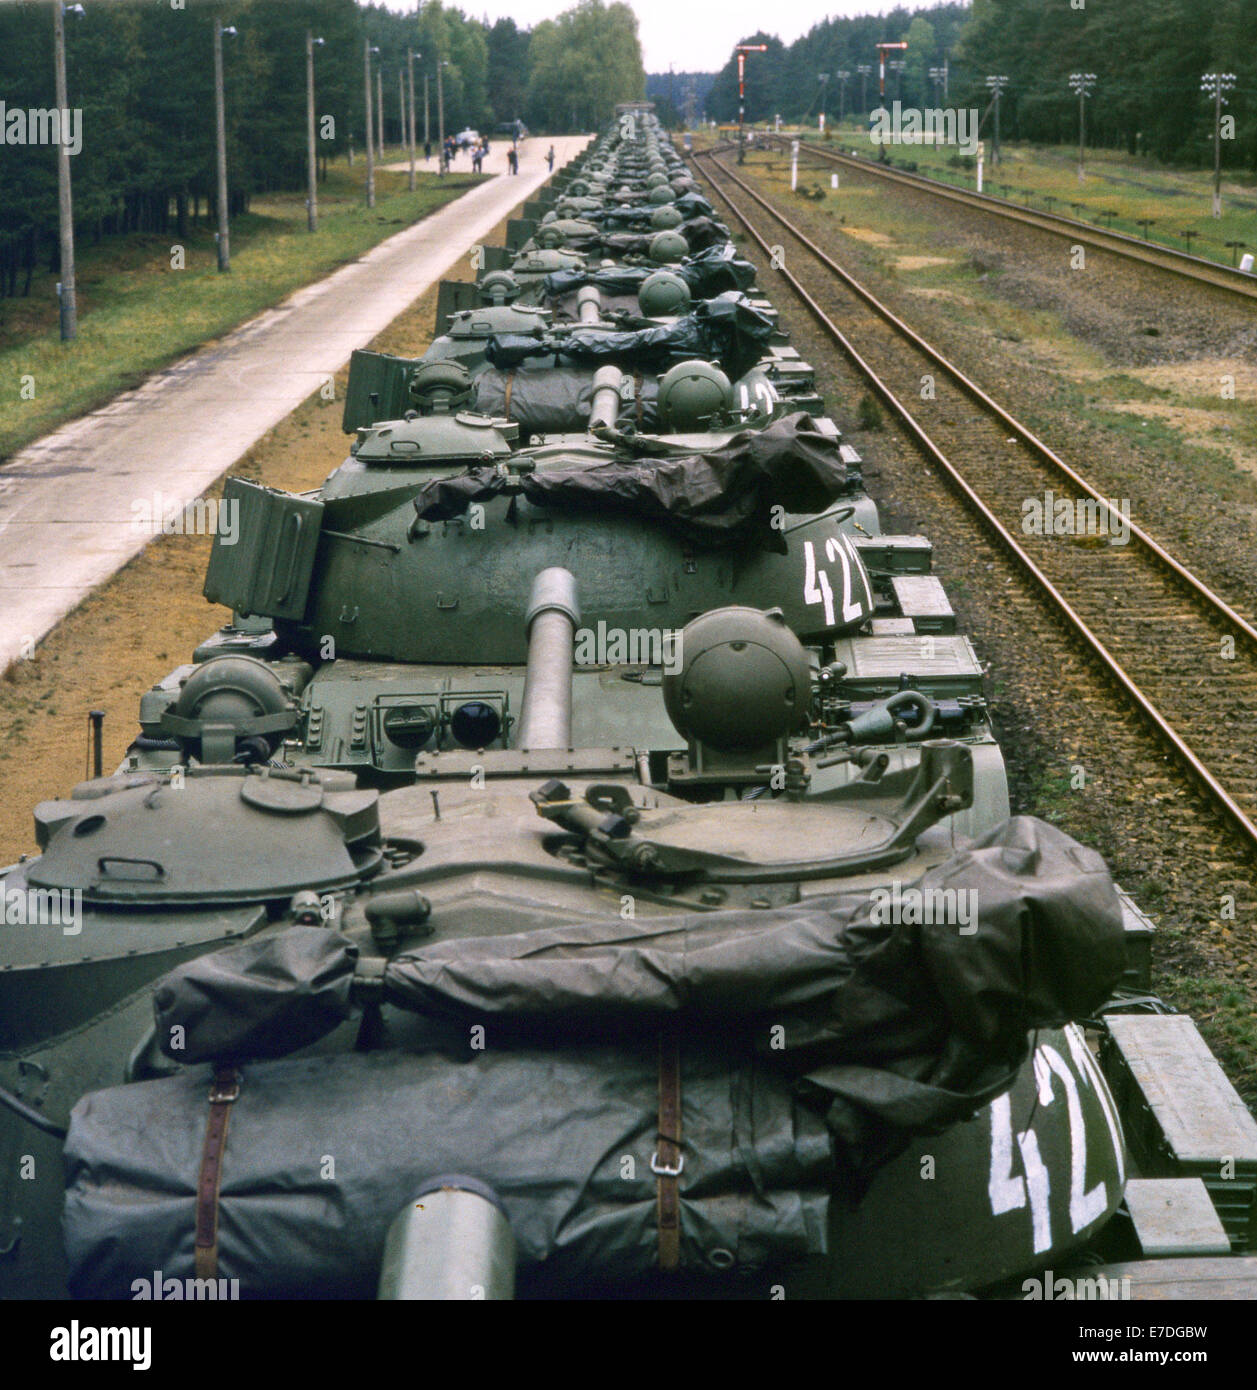 Soviet Armed Forces / Soviet Army (1946-1991) - Page 5 A-transport-train-with-soviet-tanks-sits-ready-to-be-taken-back-to-E7DGBW